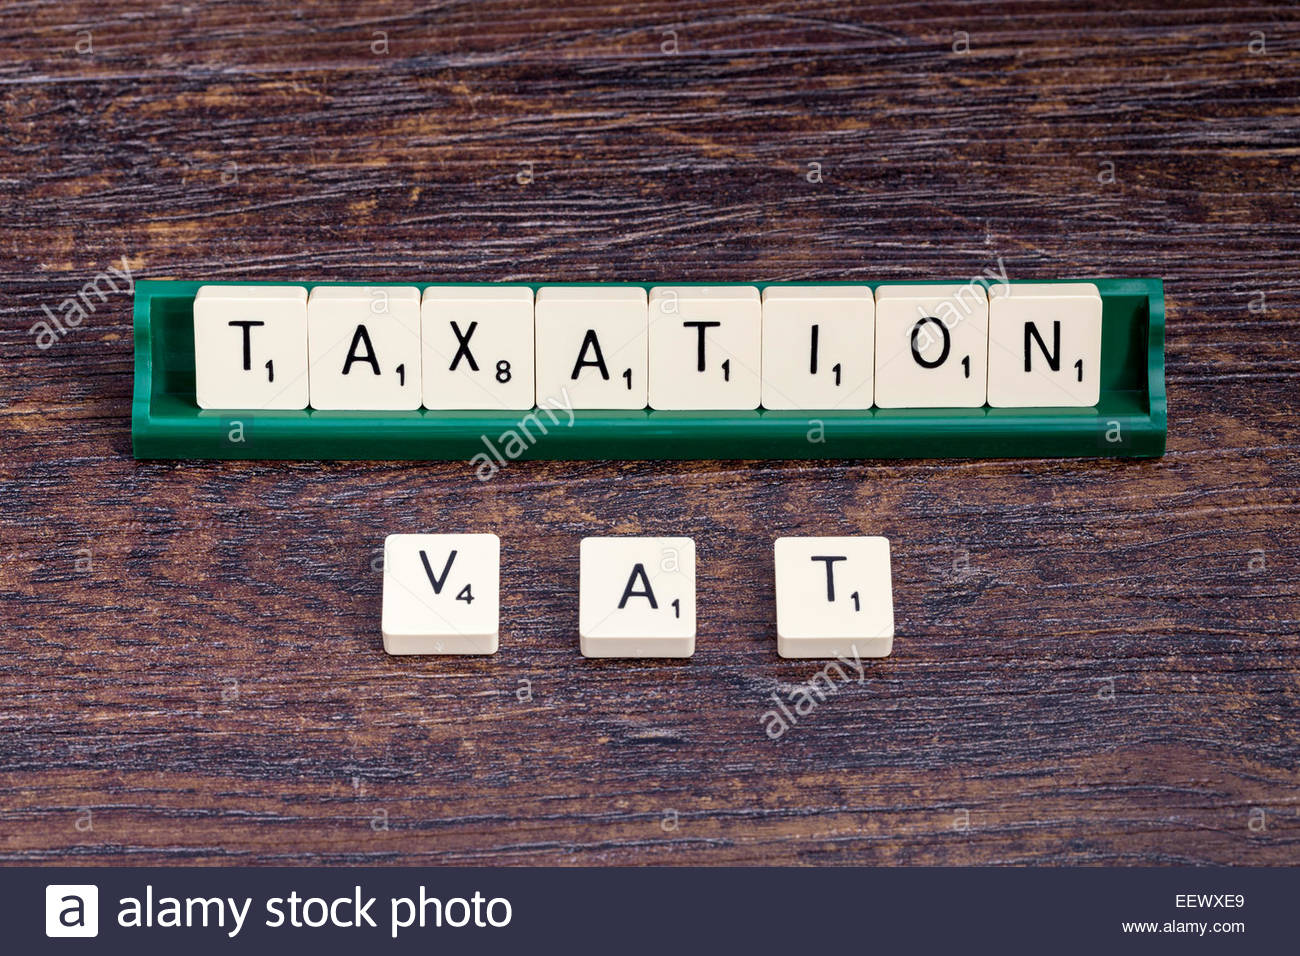 Taxation and VAT spelled out with scrabble letters. - Stock Image